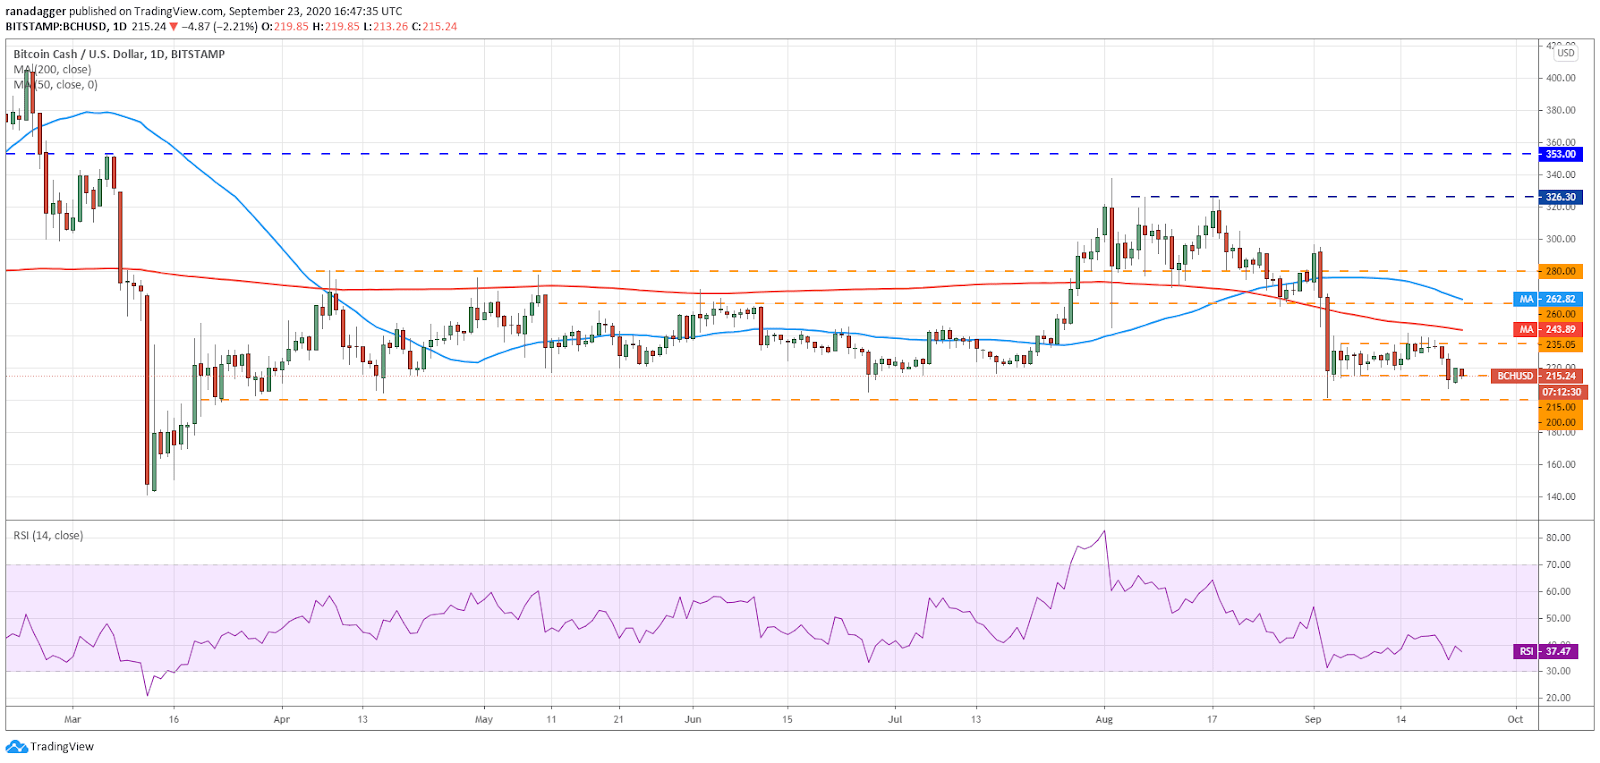 BCH/USD daily chart. Source: TradingView